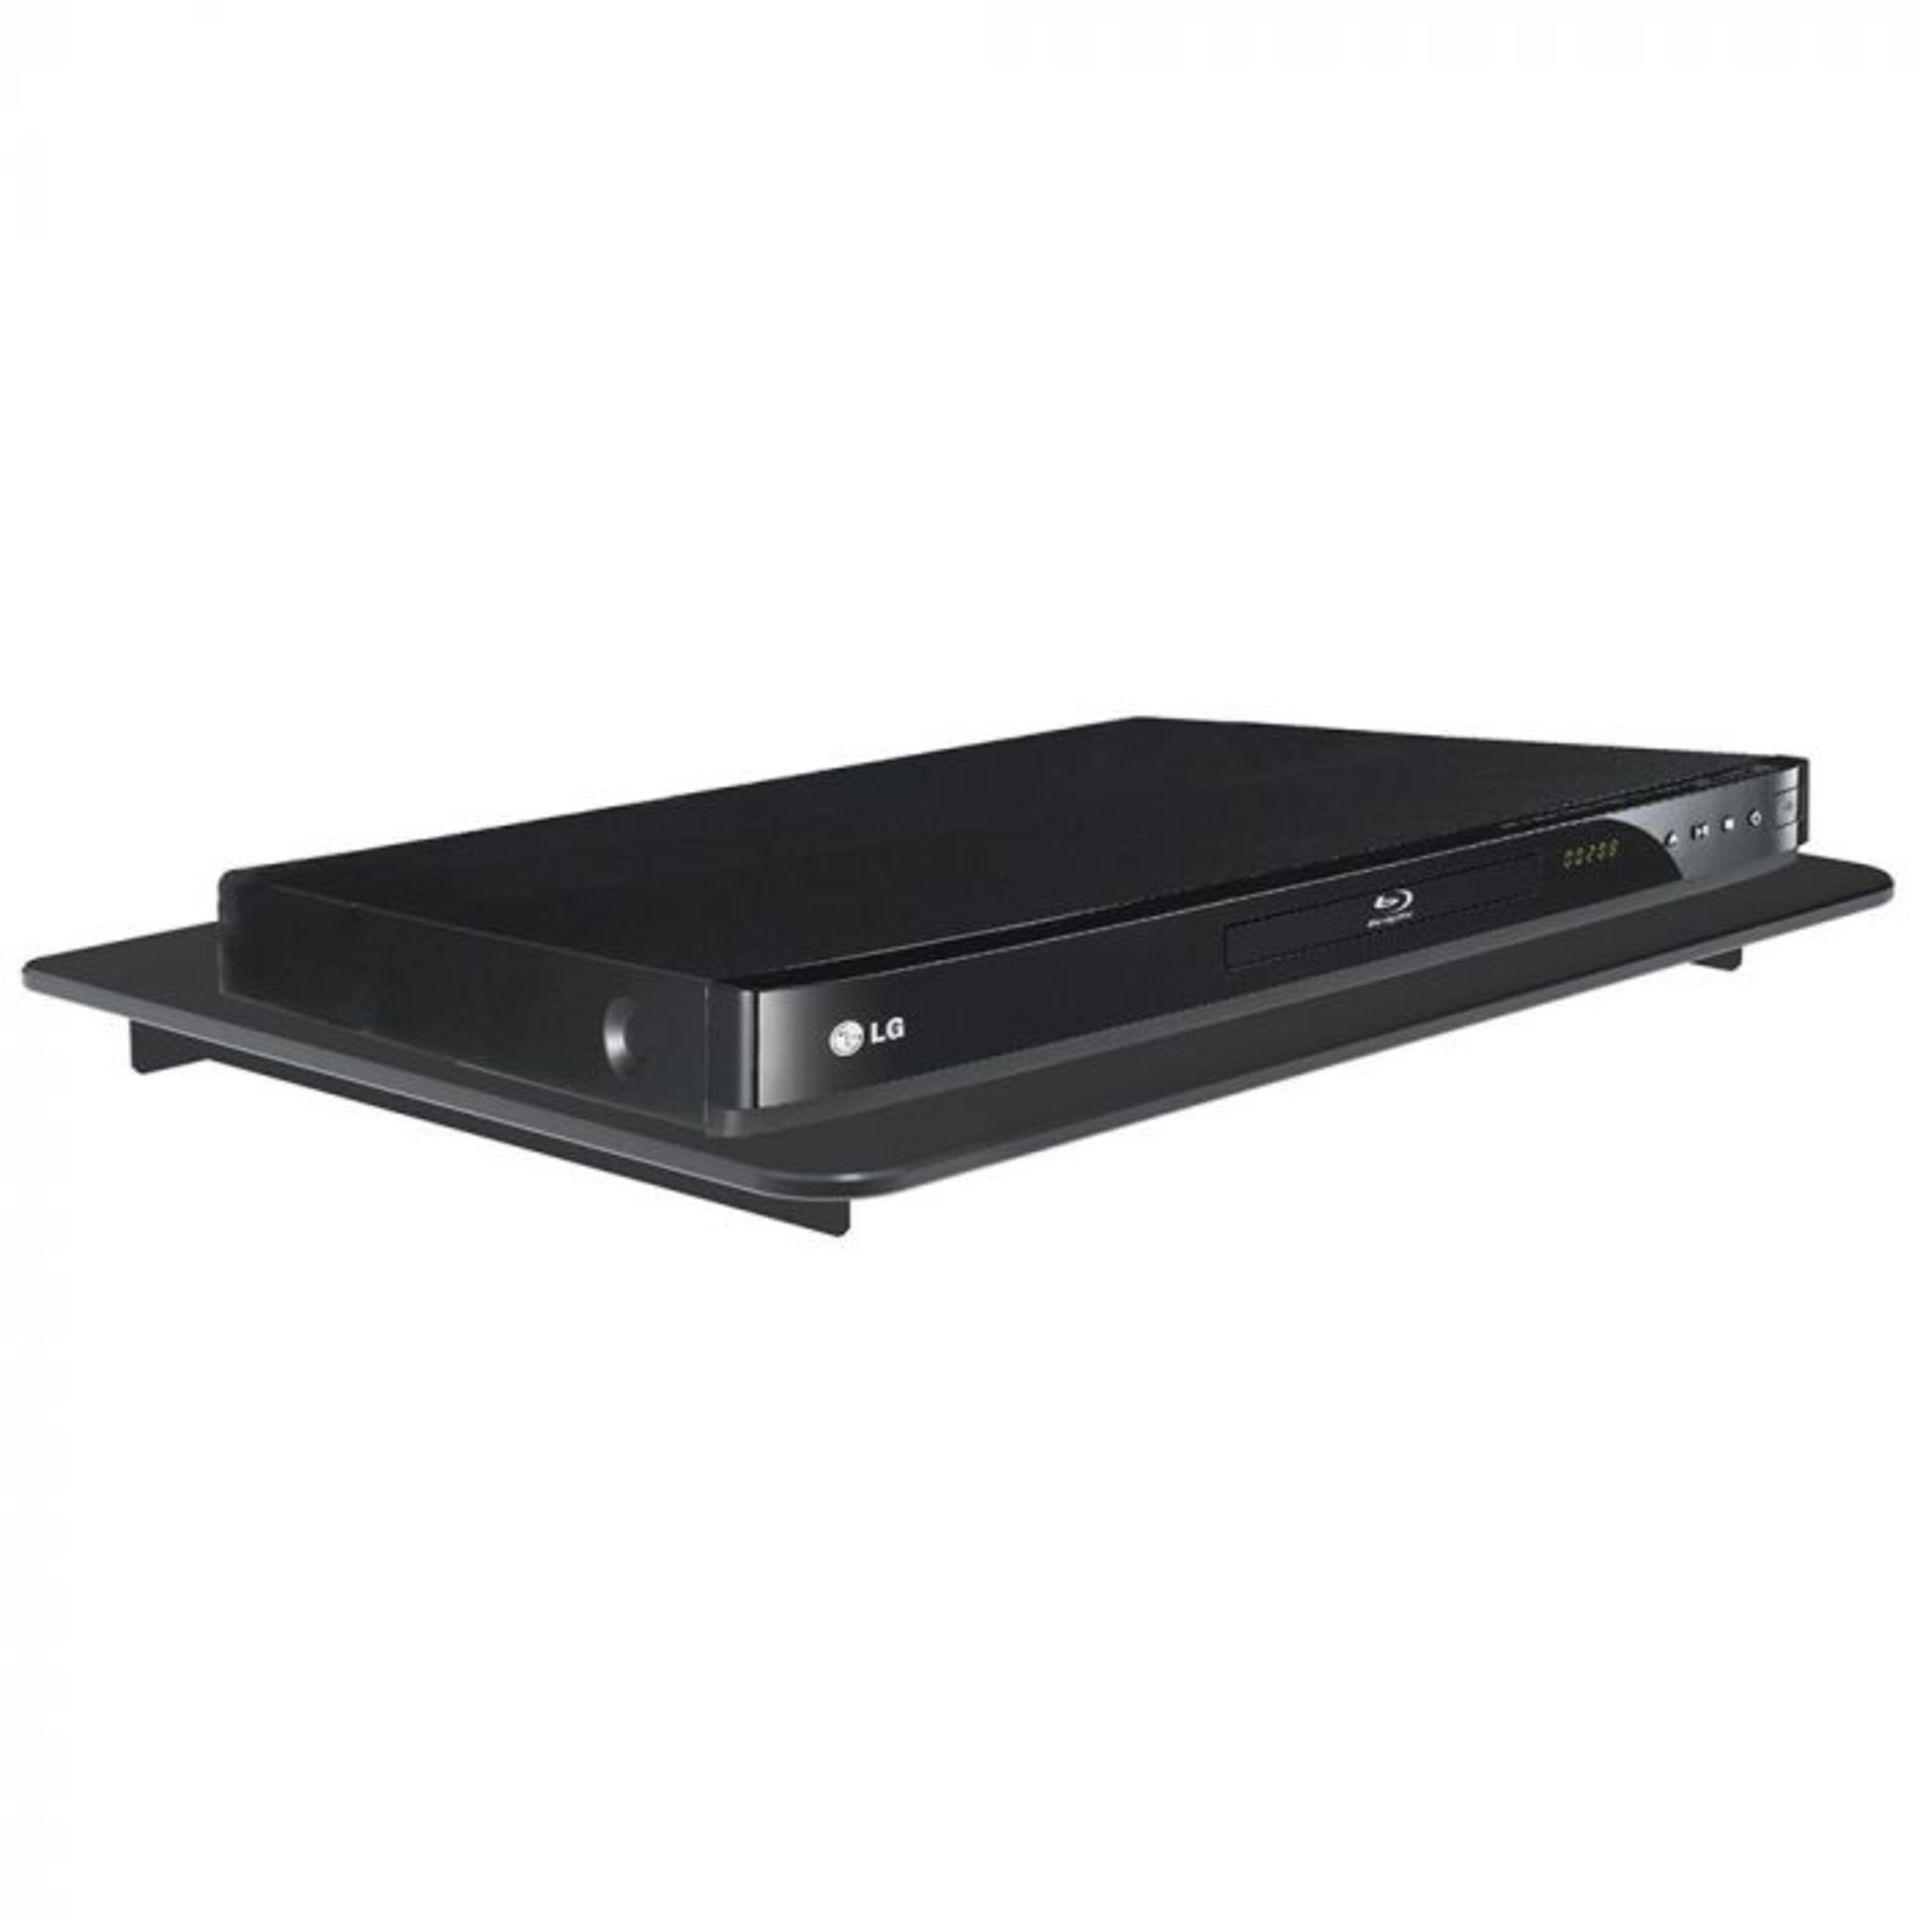 Lot 272 - (S308) Floating Shelf The perfect wall-mounted storage solution Supports up to 4kg, enough fo...